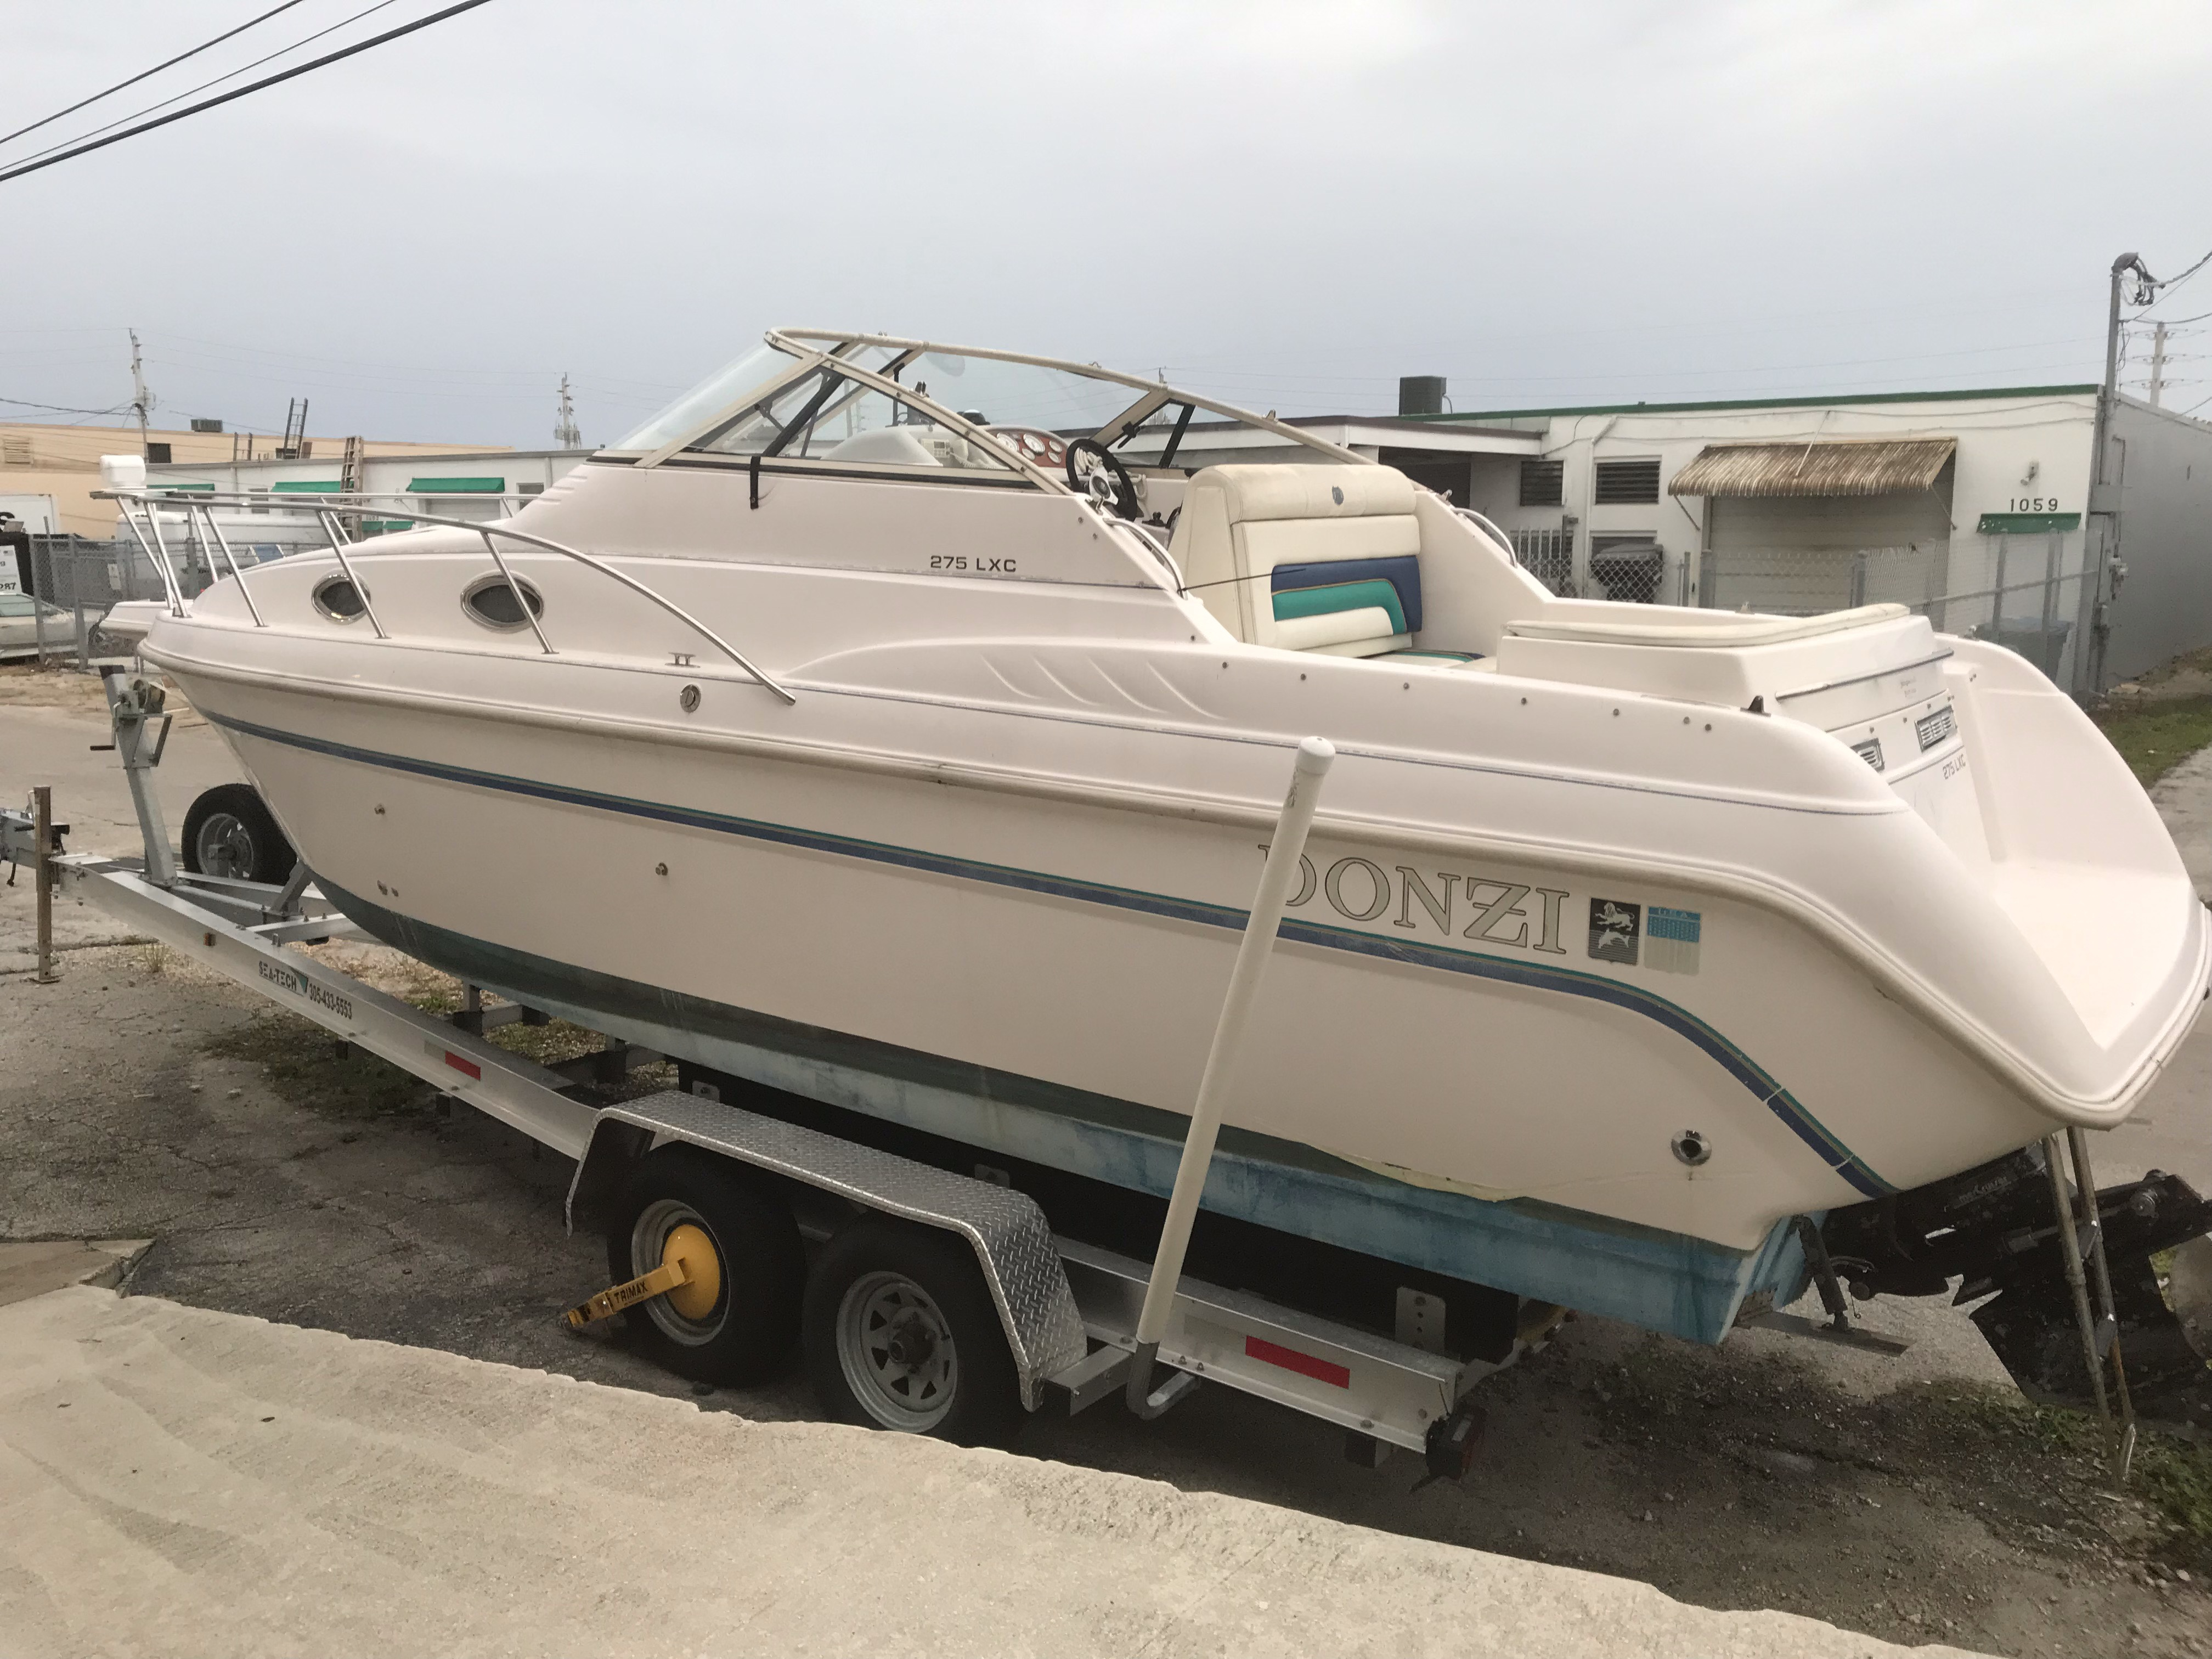 Donzi boats for sale by owner - Boat Trader